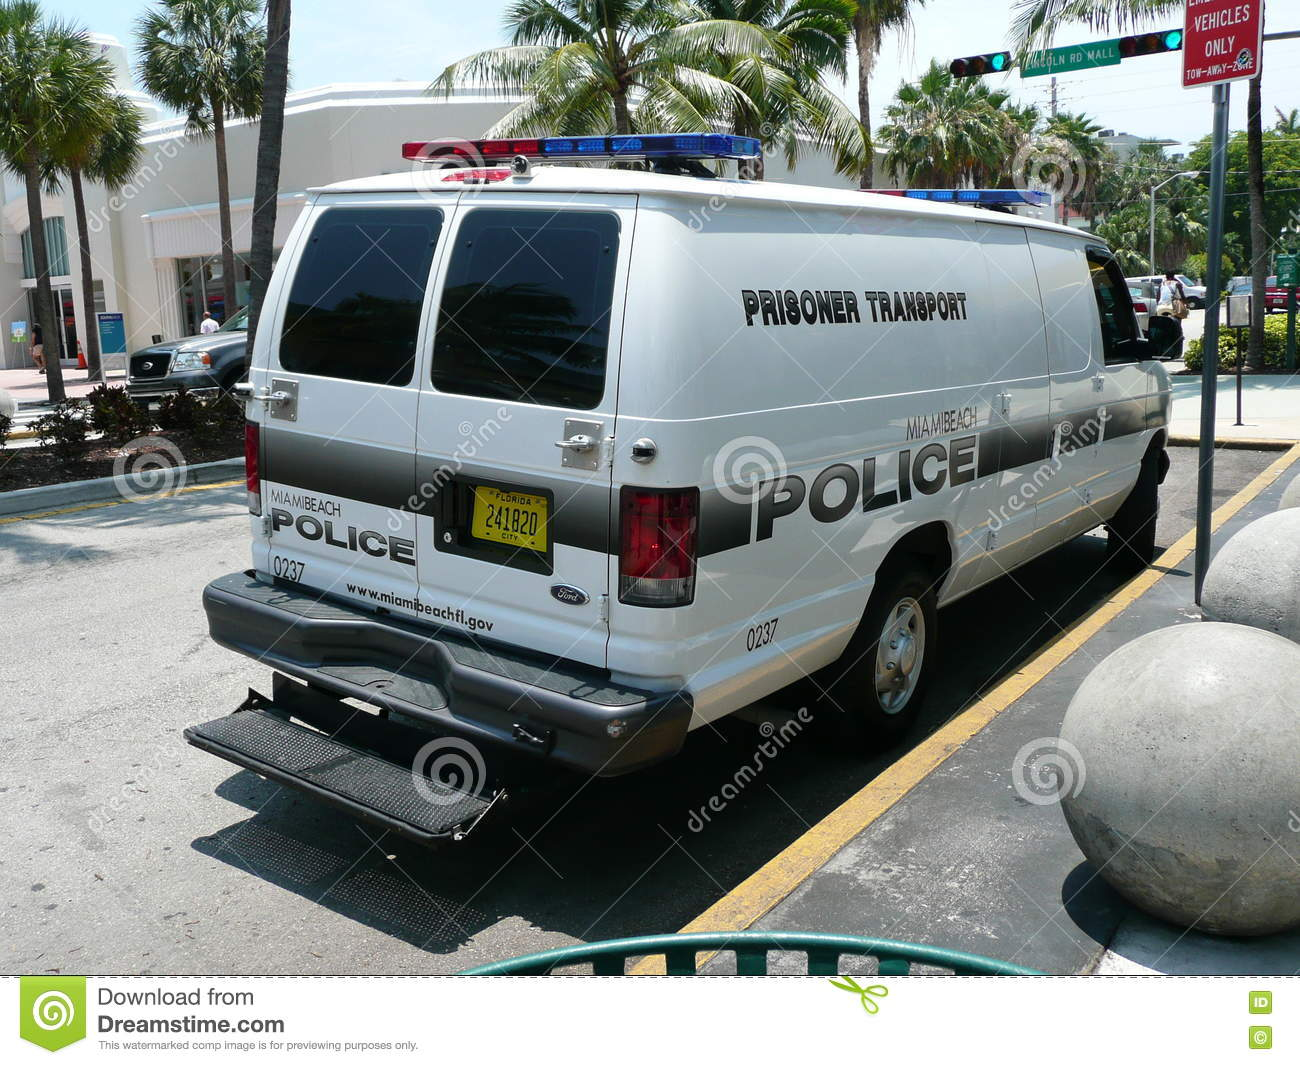 Prisoner Transport Van >> Police Prisoner Transport Van Editorial Photography Image